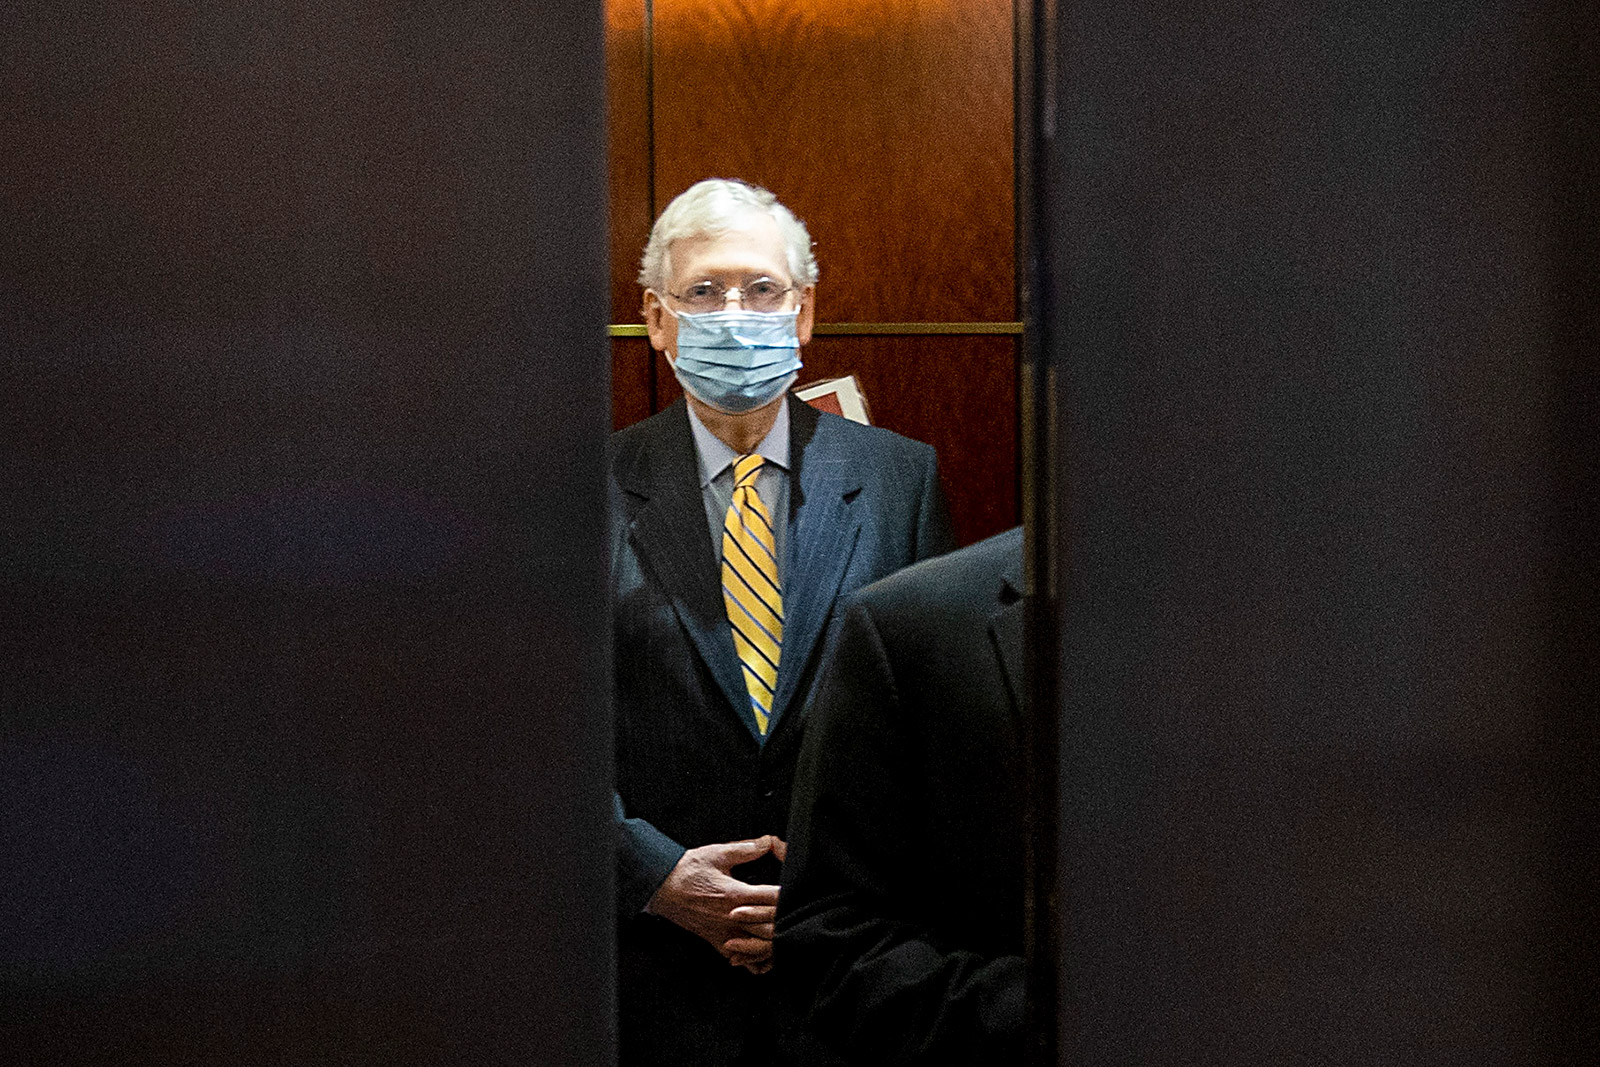 Senate Majority Leader Mitch McConnell leaves after a closed door briefing at the Capitol on July 2.